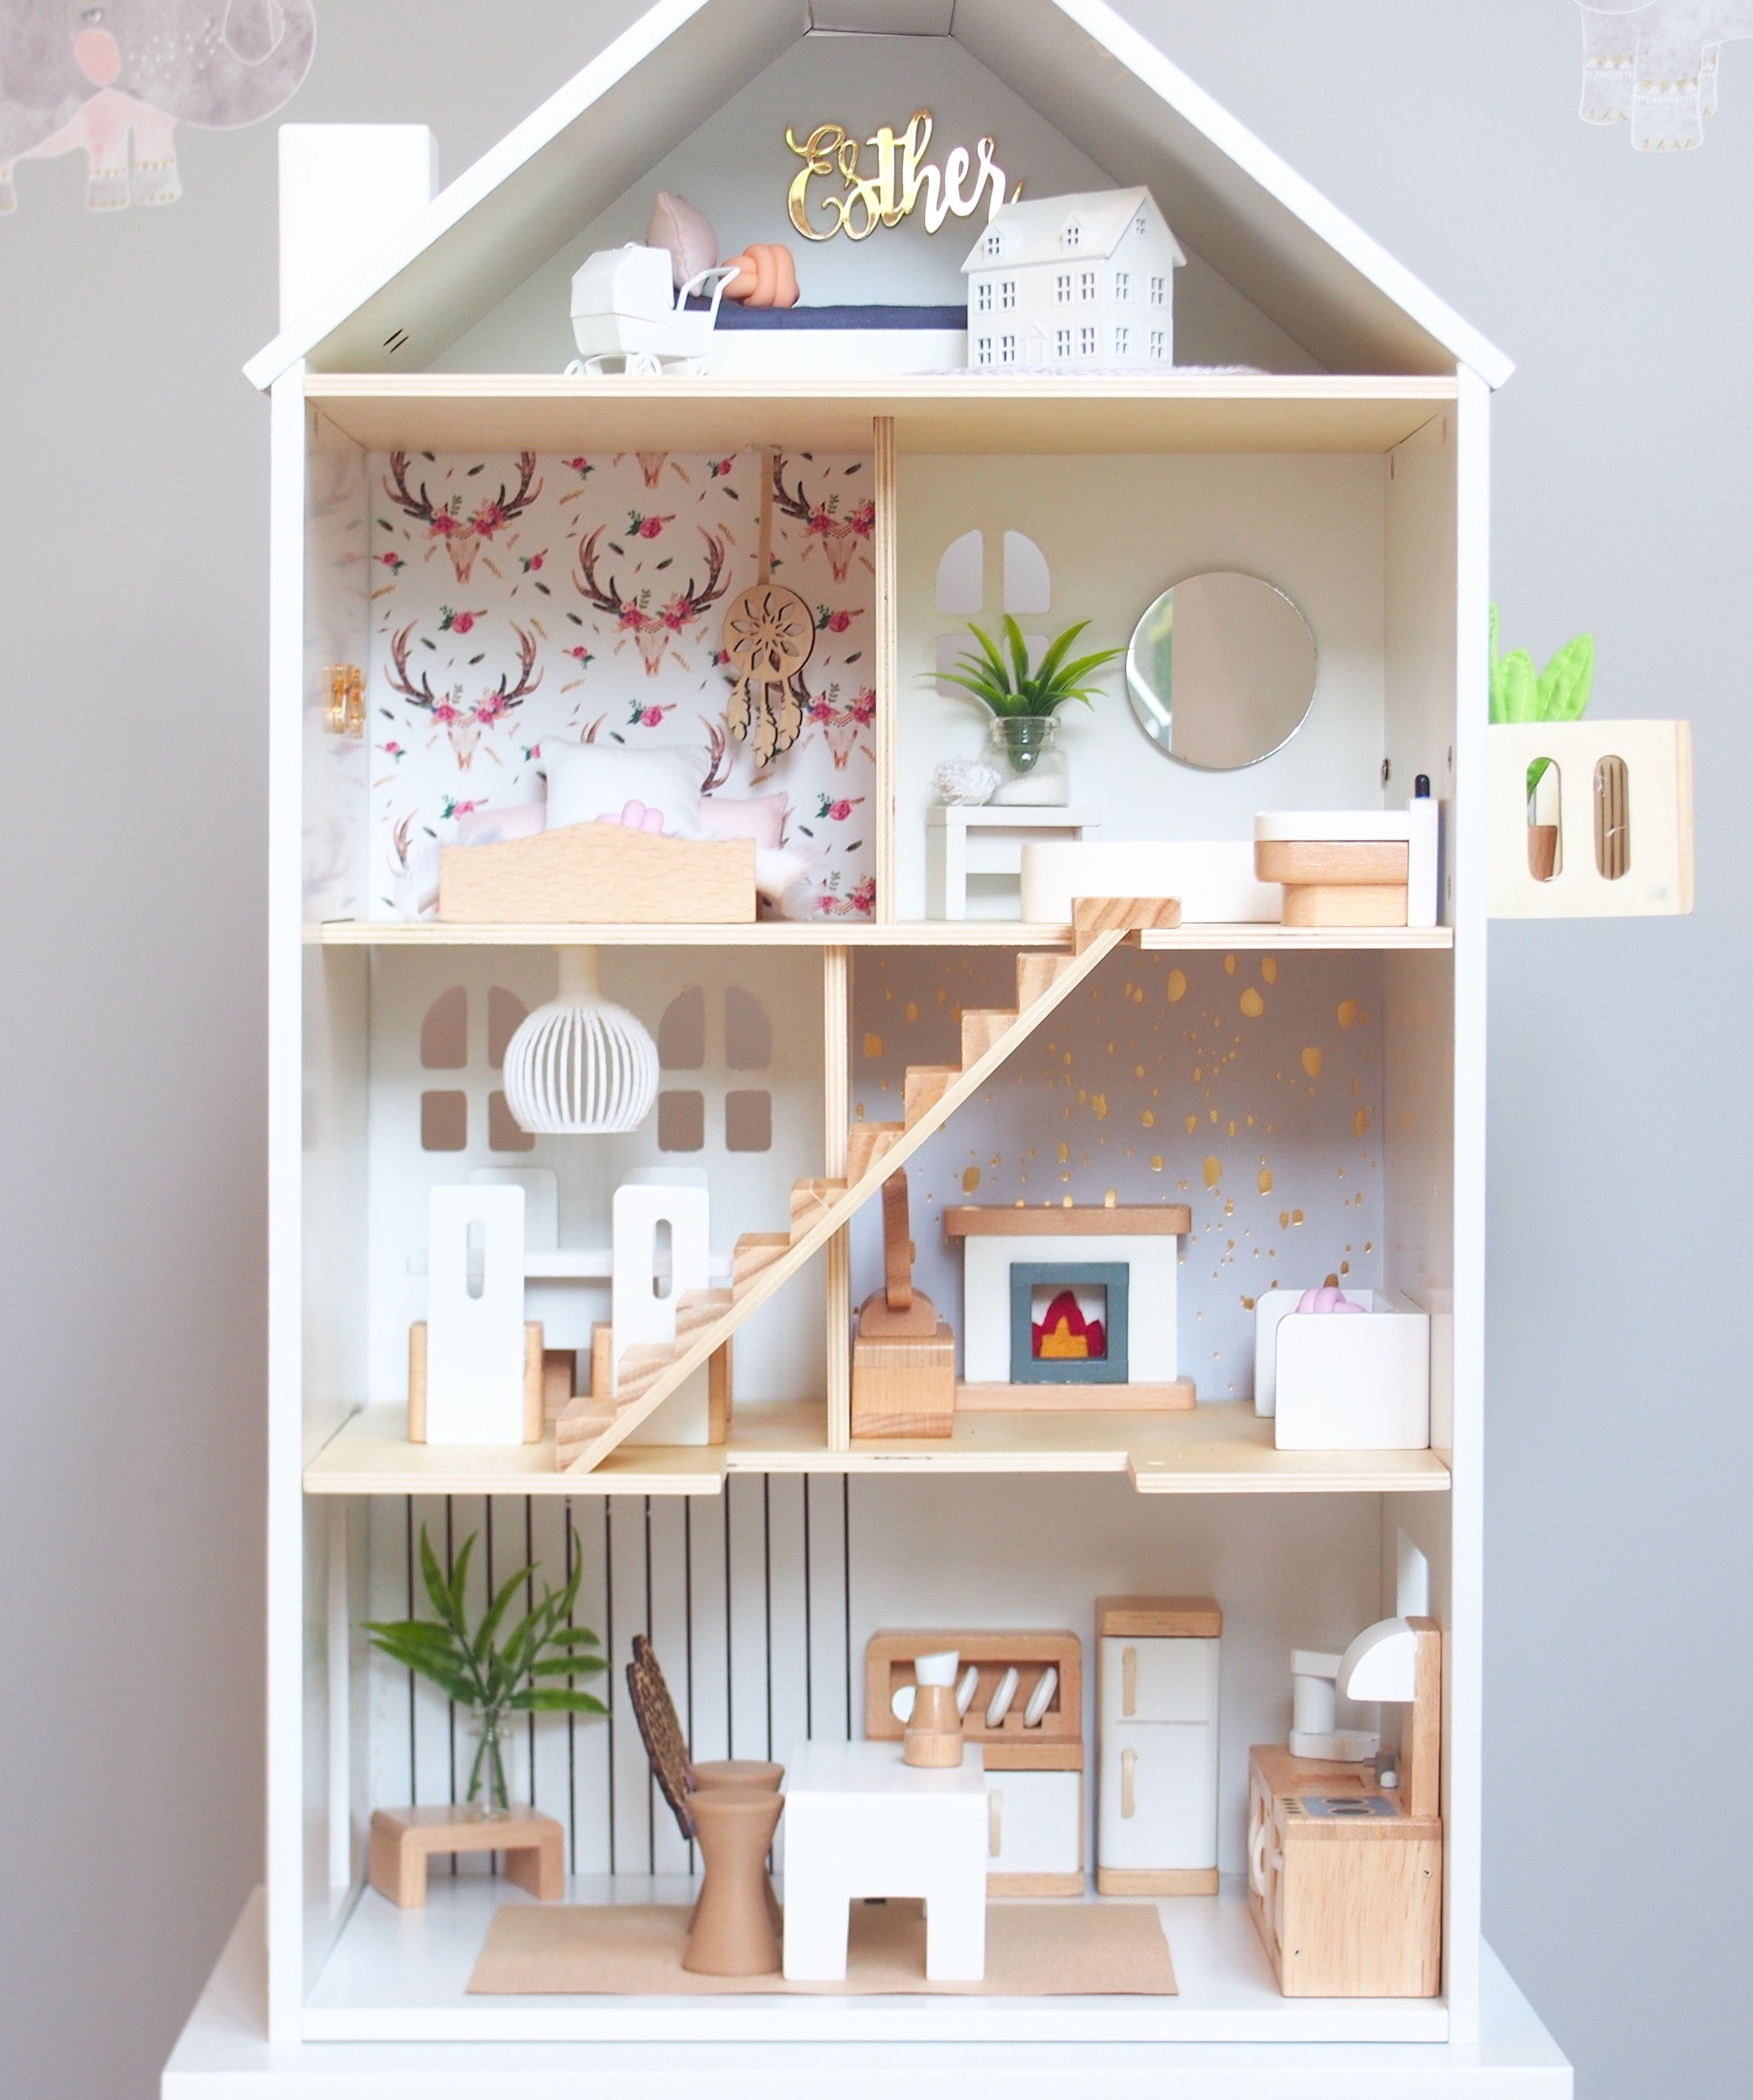 Make your own dollhouse furniture Sofa Modern Dollhouse Diy Ideas And Make Your Own Dollhouse Furniture Modern Dollhouse Furniture For Sale At Wwwprettylittleminiscom Dollhouse Bedroom And Wood Jigsaw Puzzles And Hobby Cnc Machines Modern Dollhouse Diy Ideas And Make Your Own Dollhouse Furniture